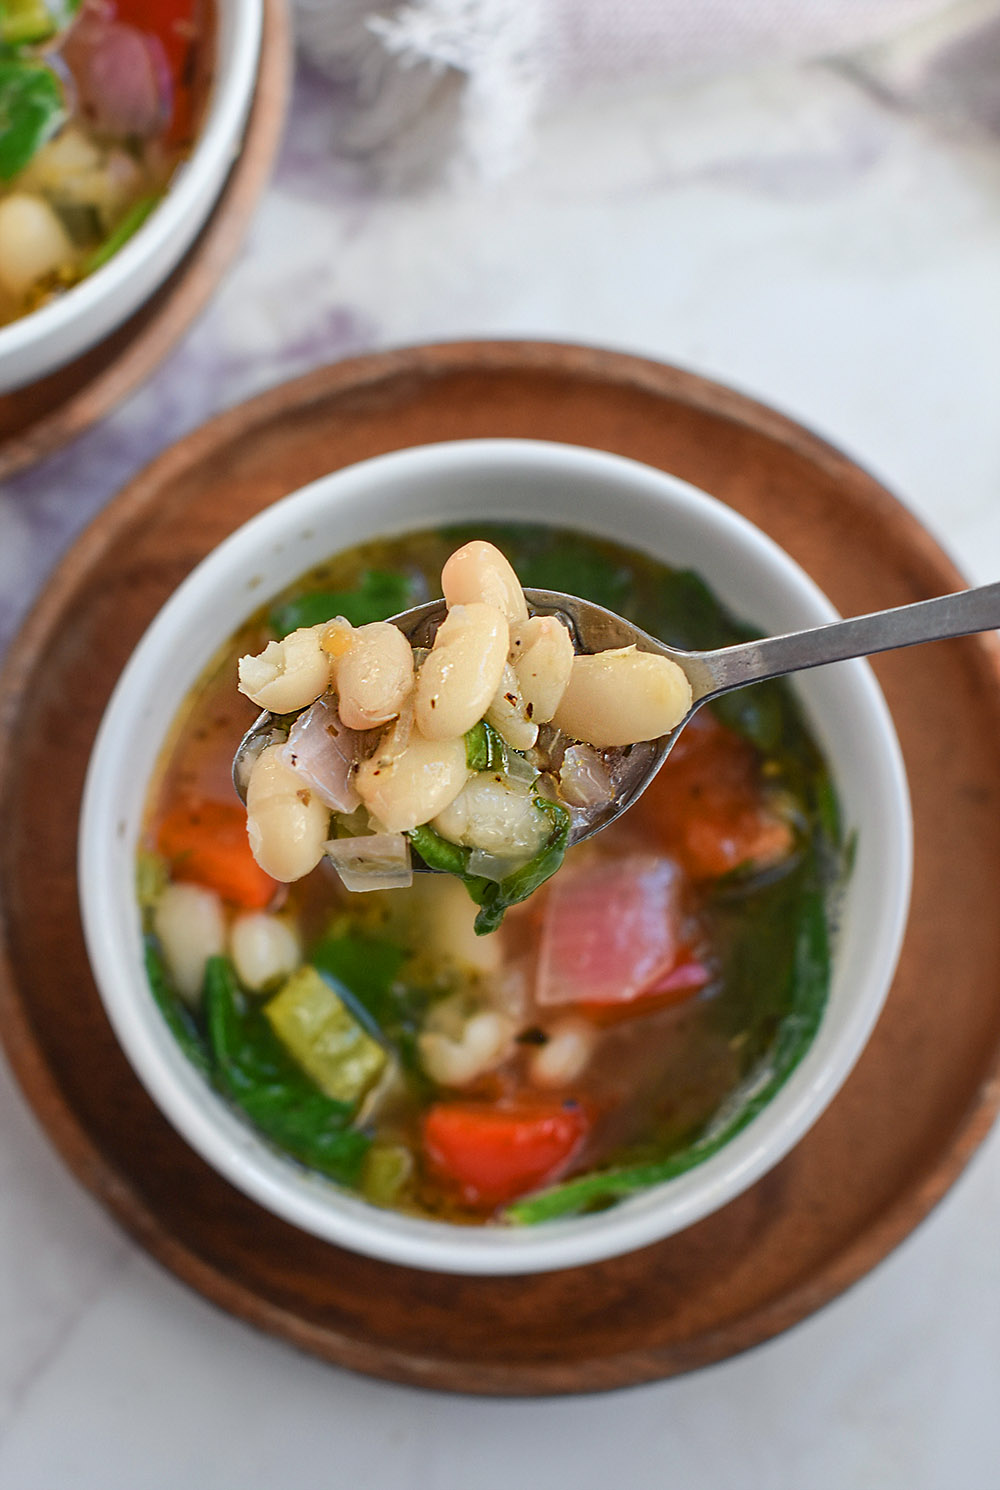 a spoonful of white bean soup full of veggies.